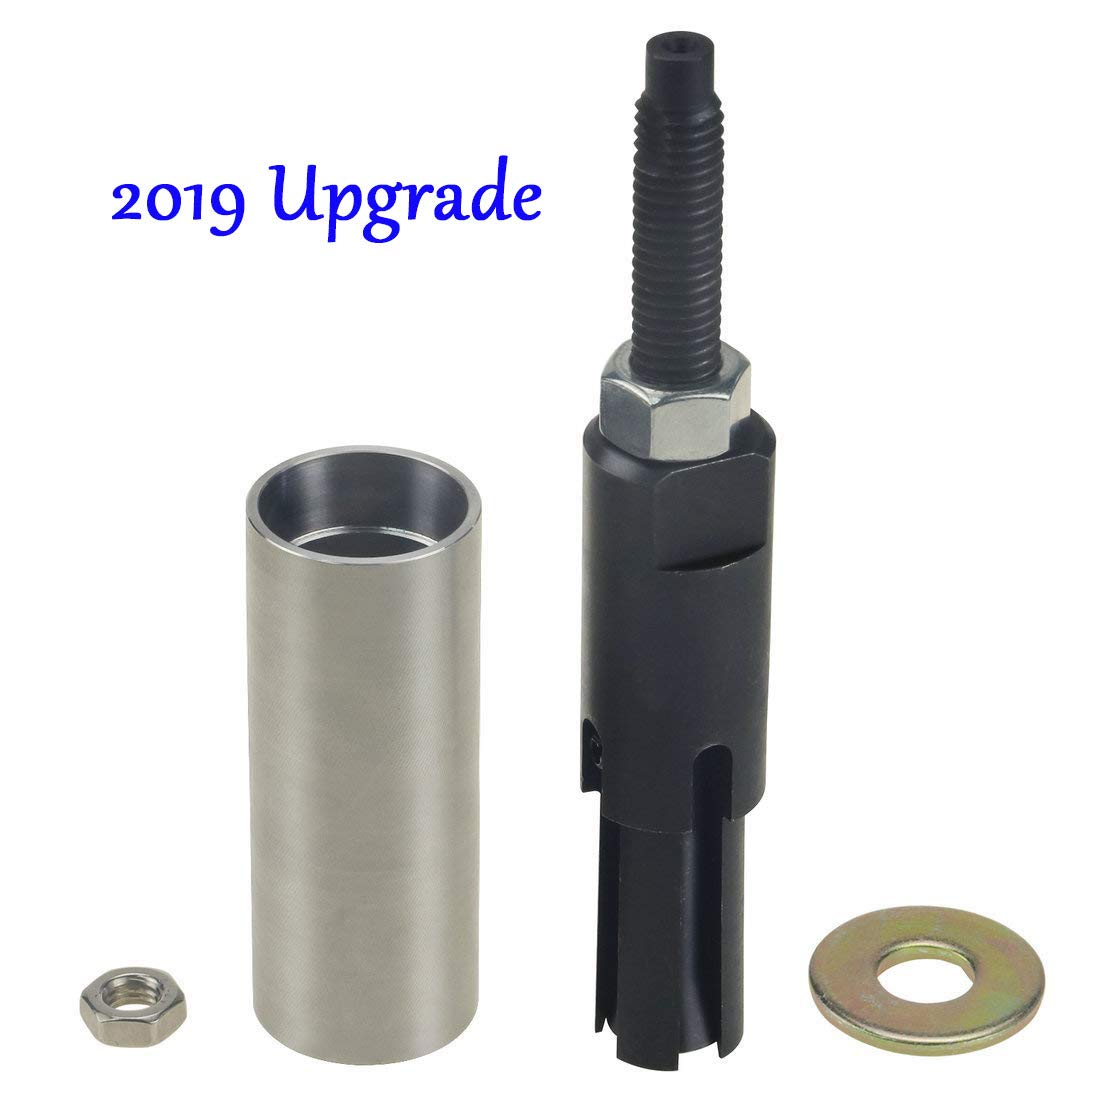 2001 to Present Vincool Injector Tube Remover//Installer Tools for GM 6.6L Duramax Diesel Similar to OTC-7222 Replaces J-45910